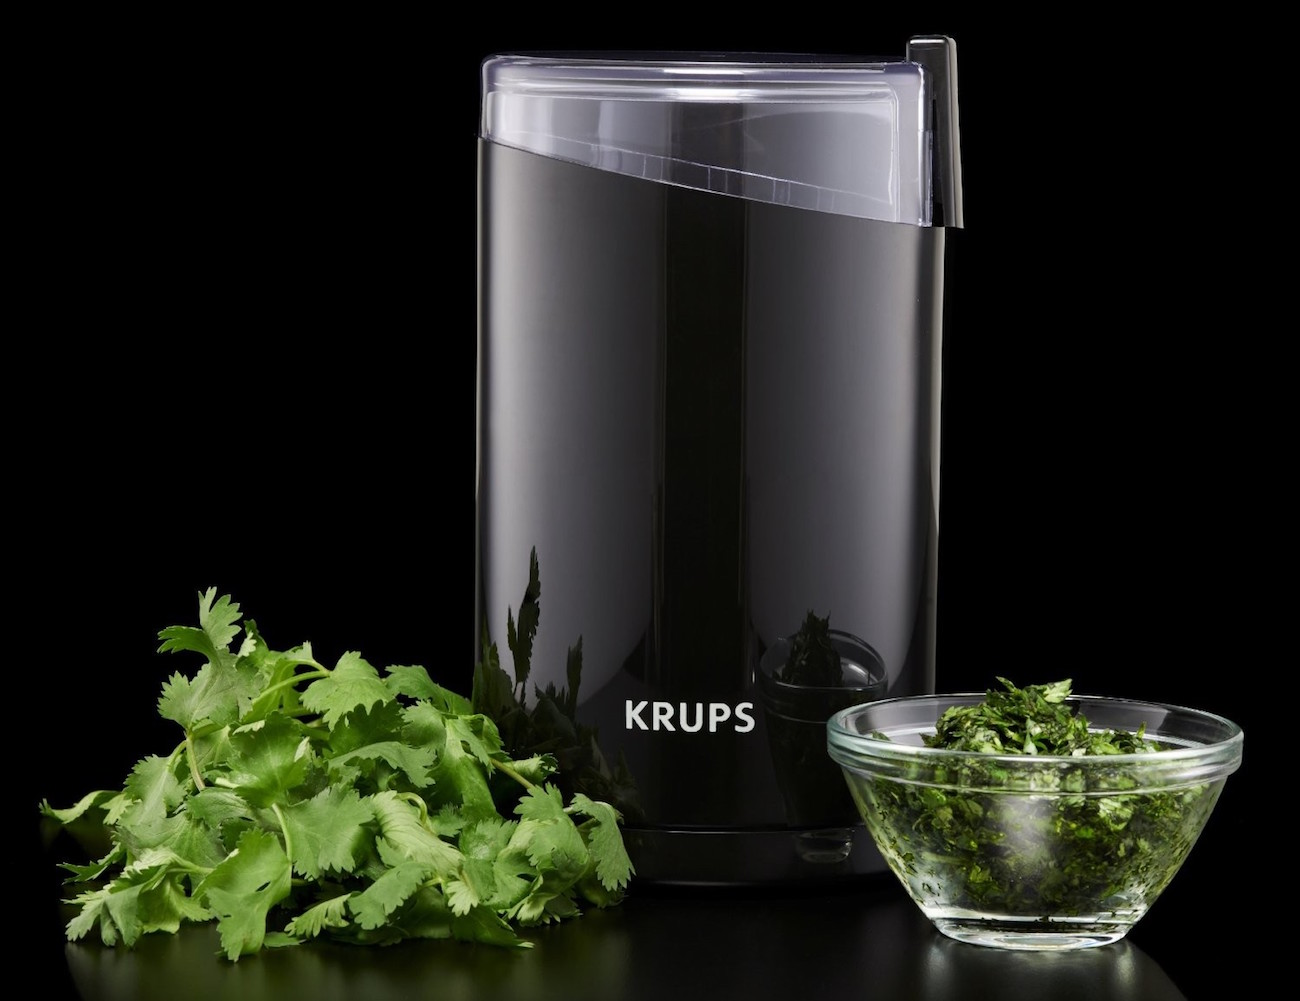 krups-electric-spice-and-coffee-grinder-04